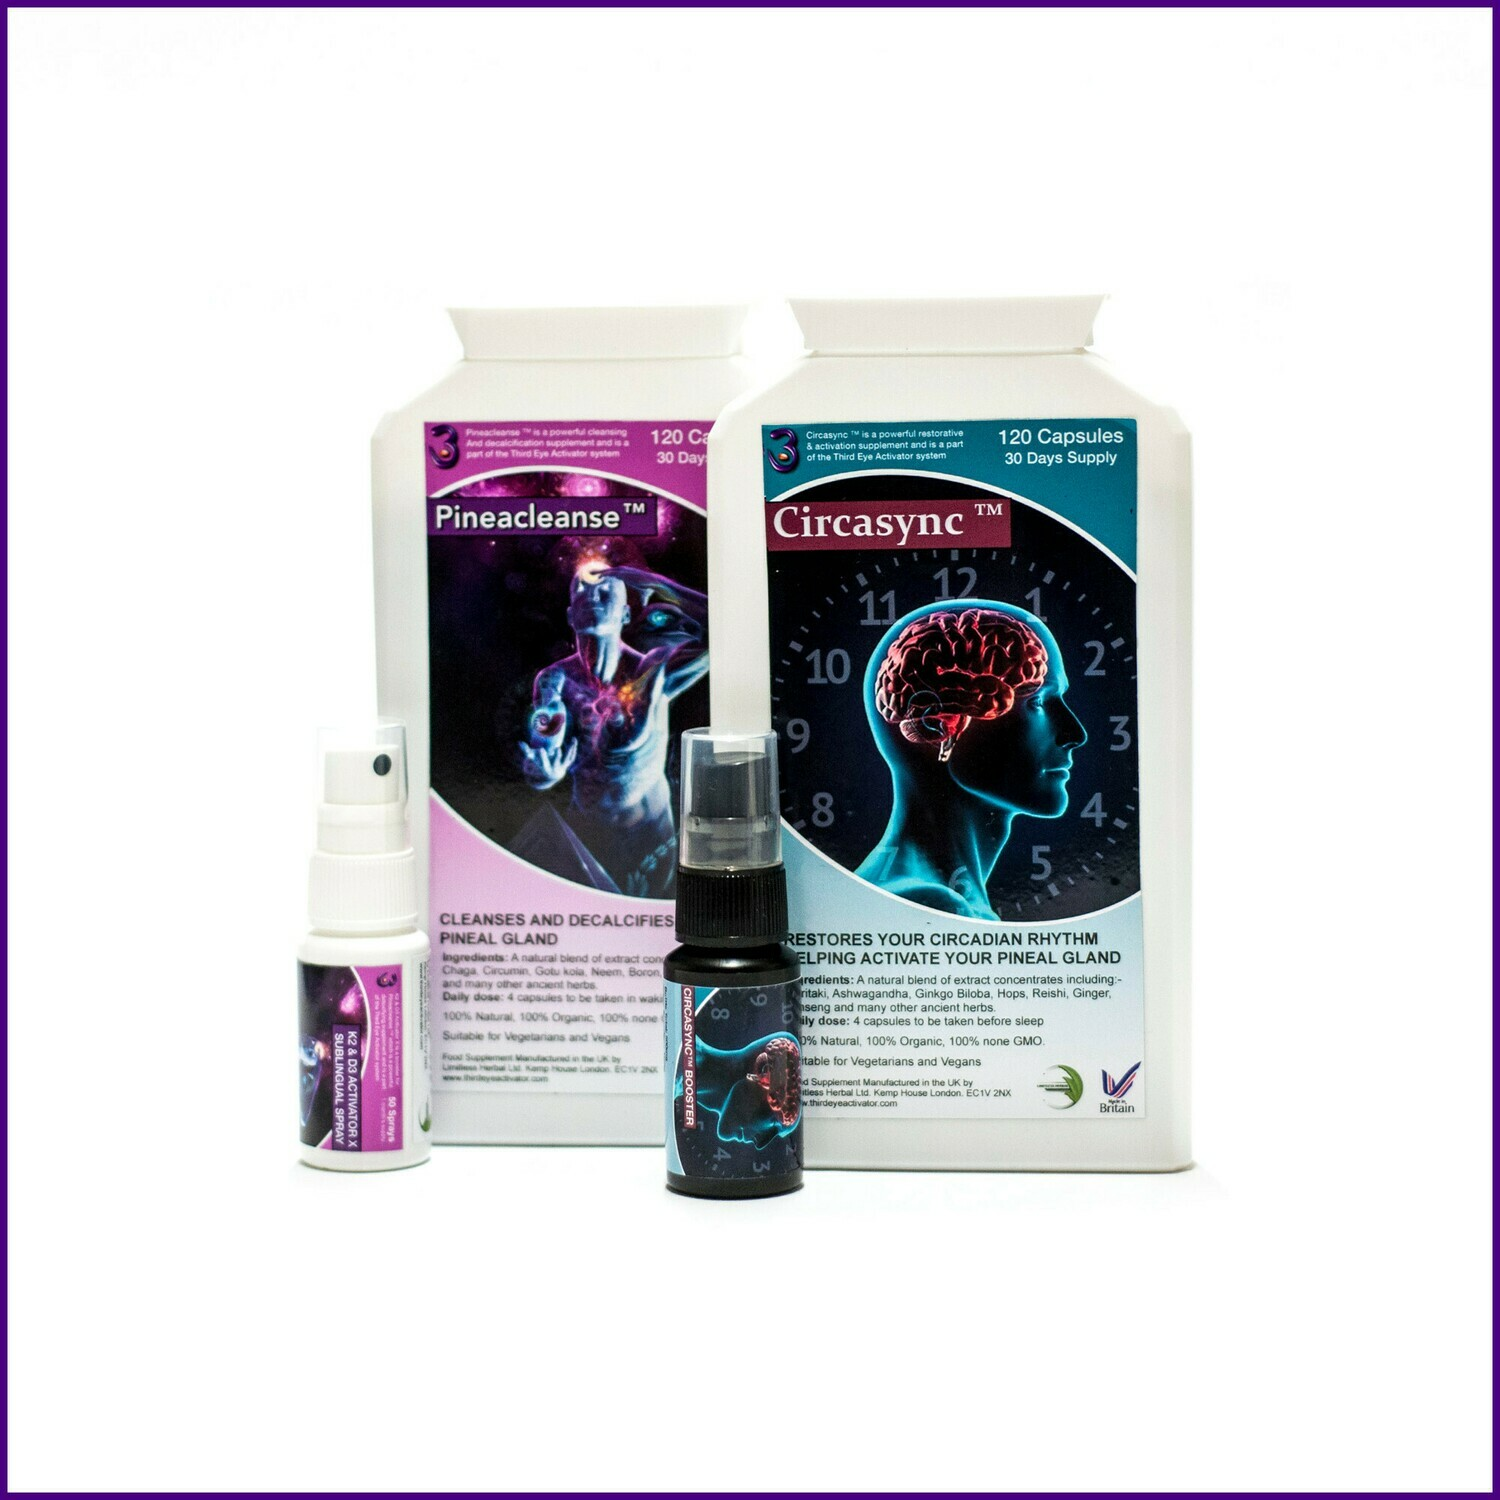 Ingredients | Third Eye Activator | Pineal Gland Decalcify